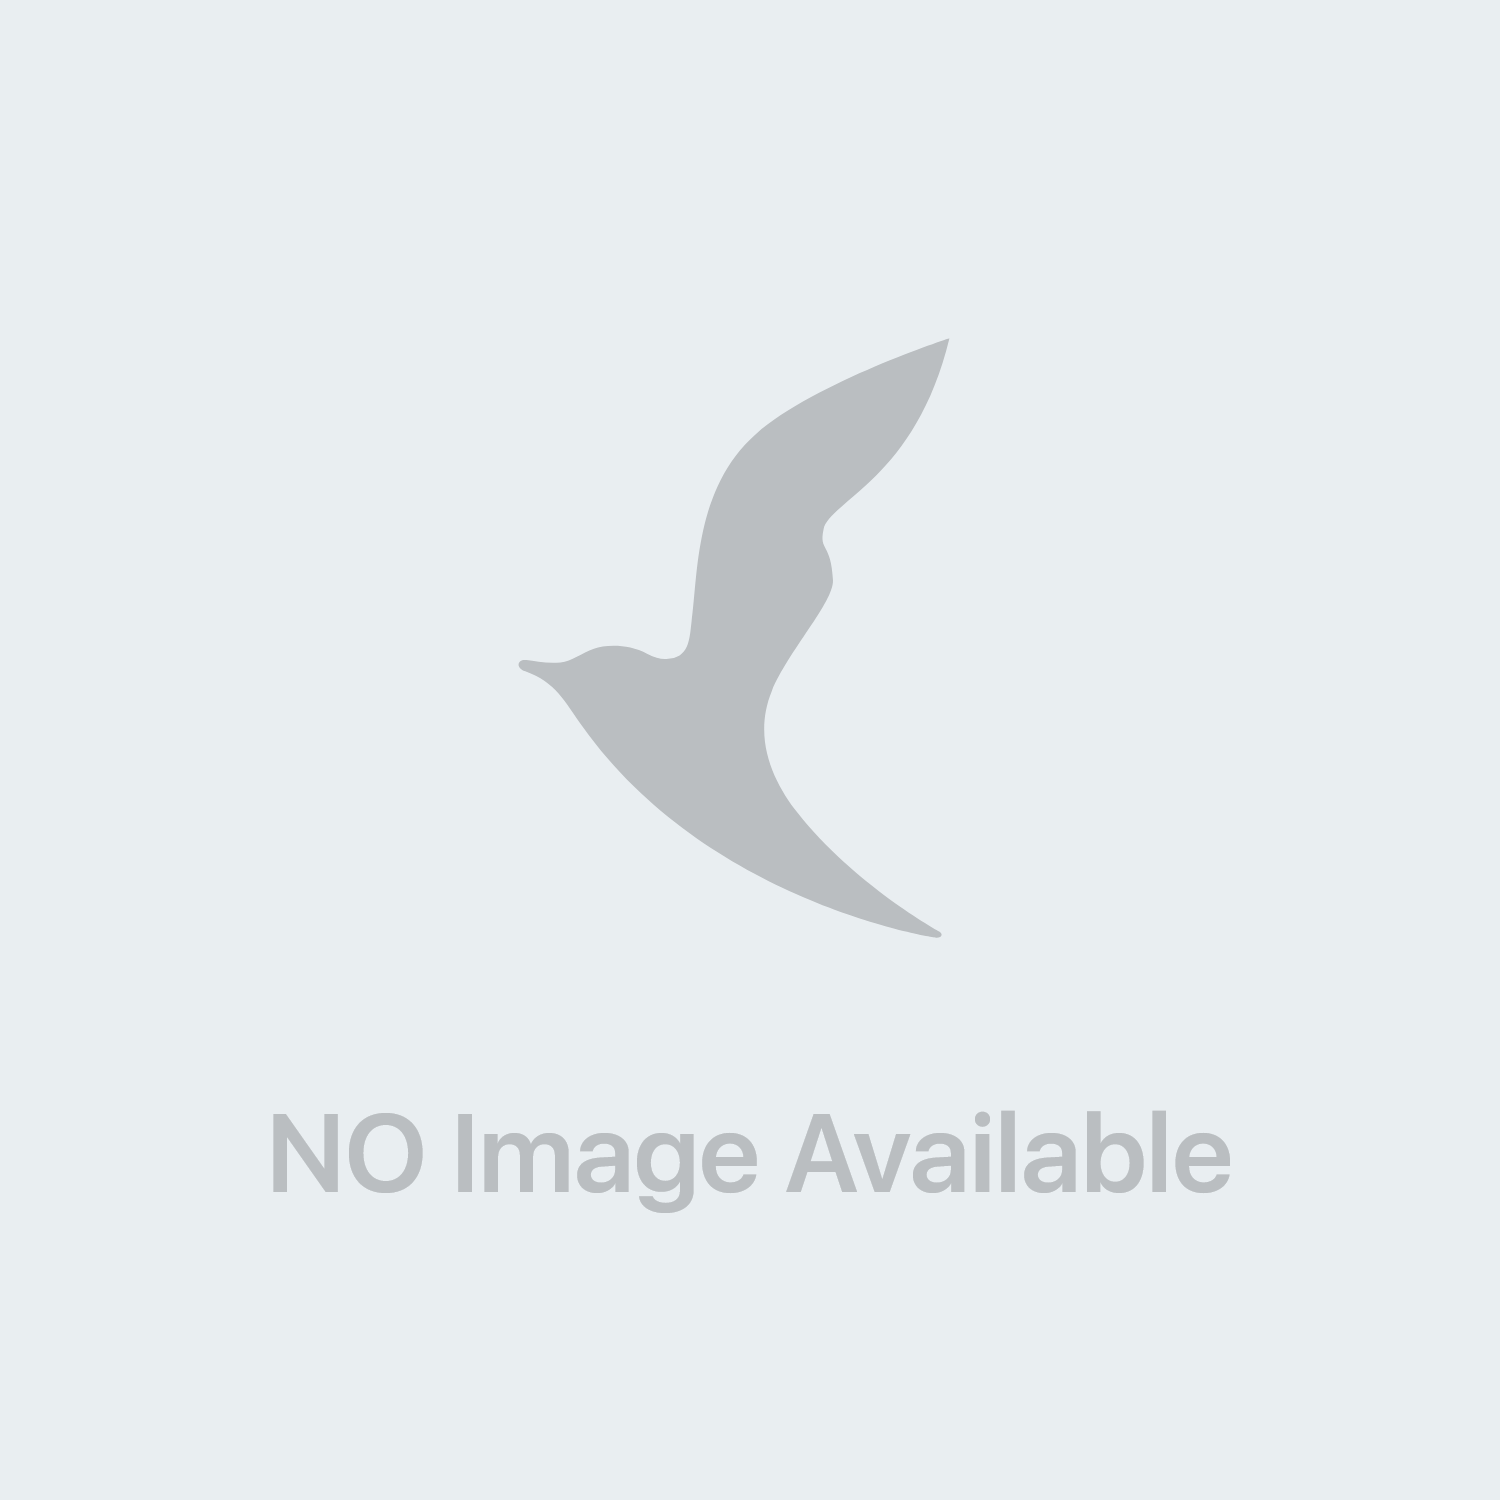 Erba Vita Antistress Solution Integratore Rilassante 45 Capsule